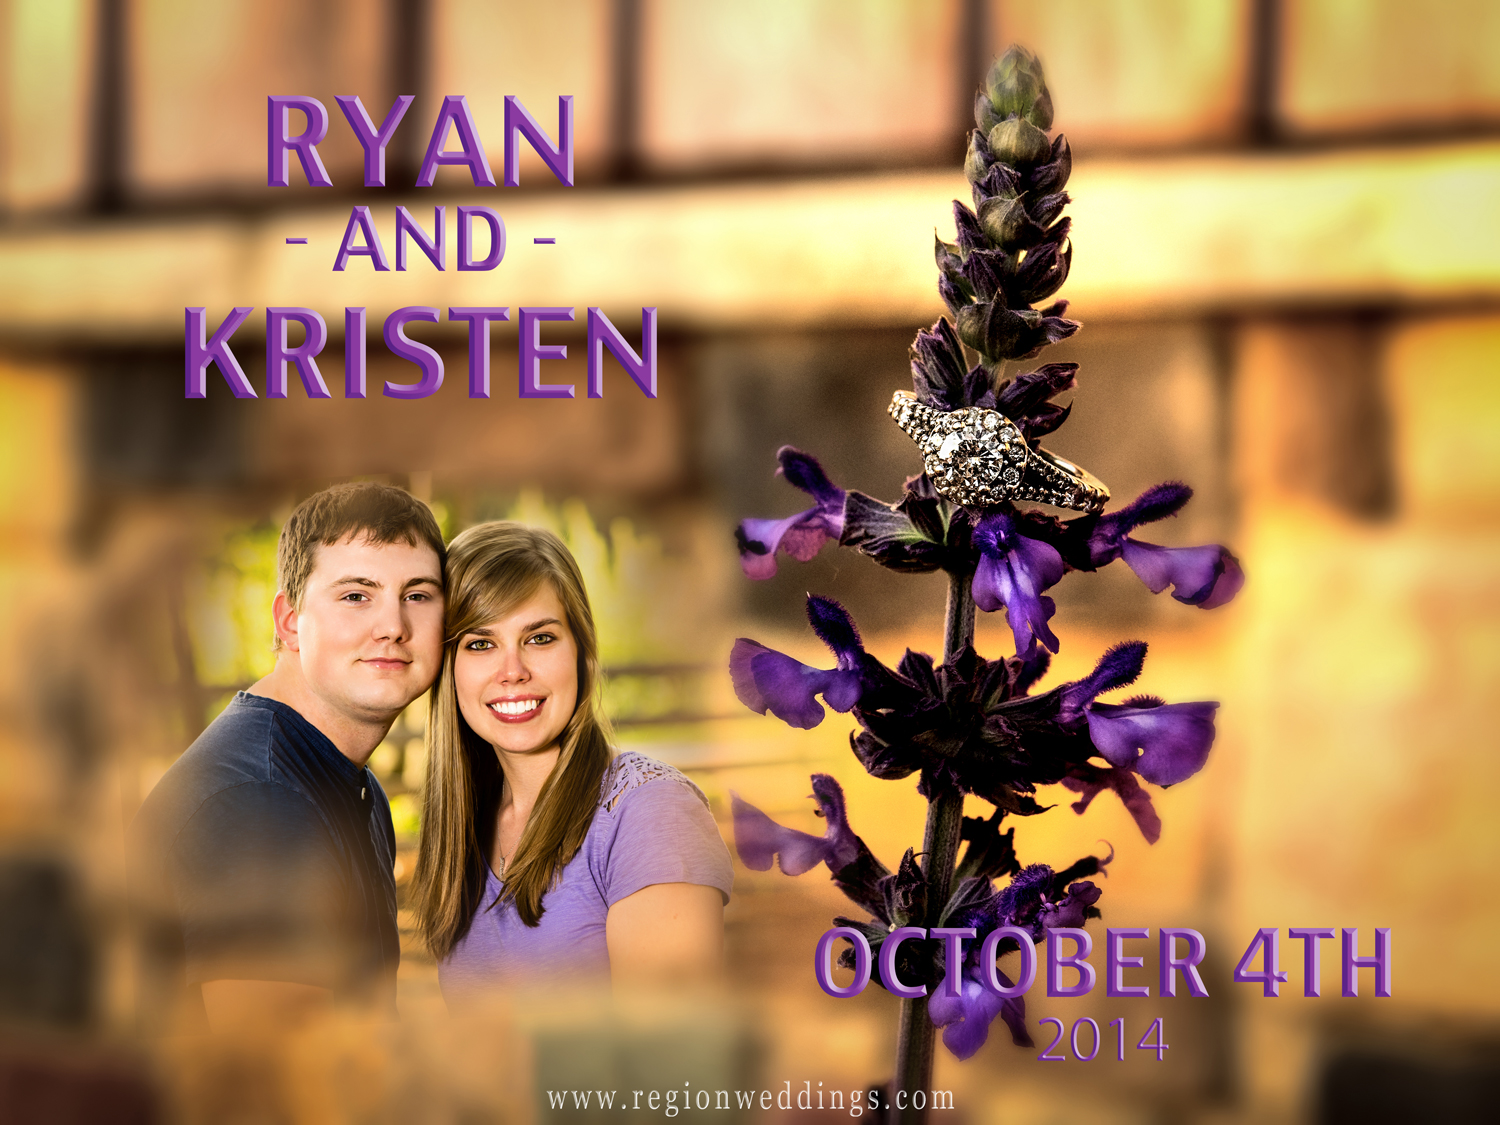 An engagement ring sits atop purple flowers with a photo of the couple and their wedding date.